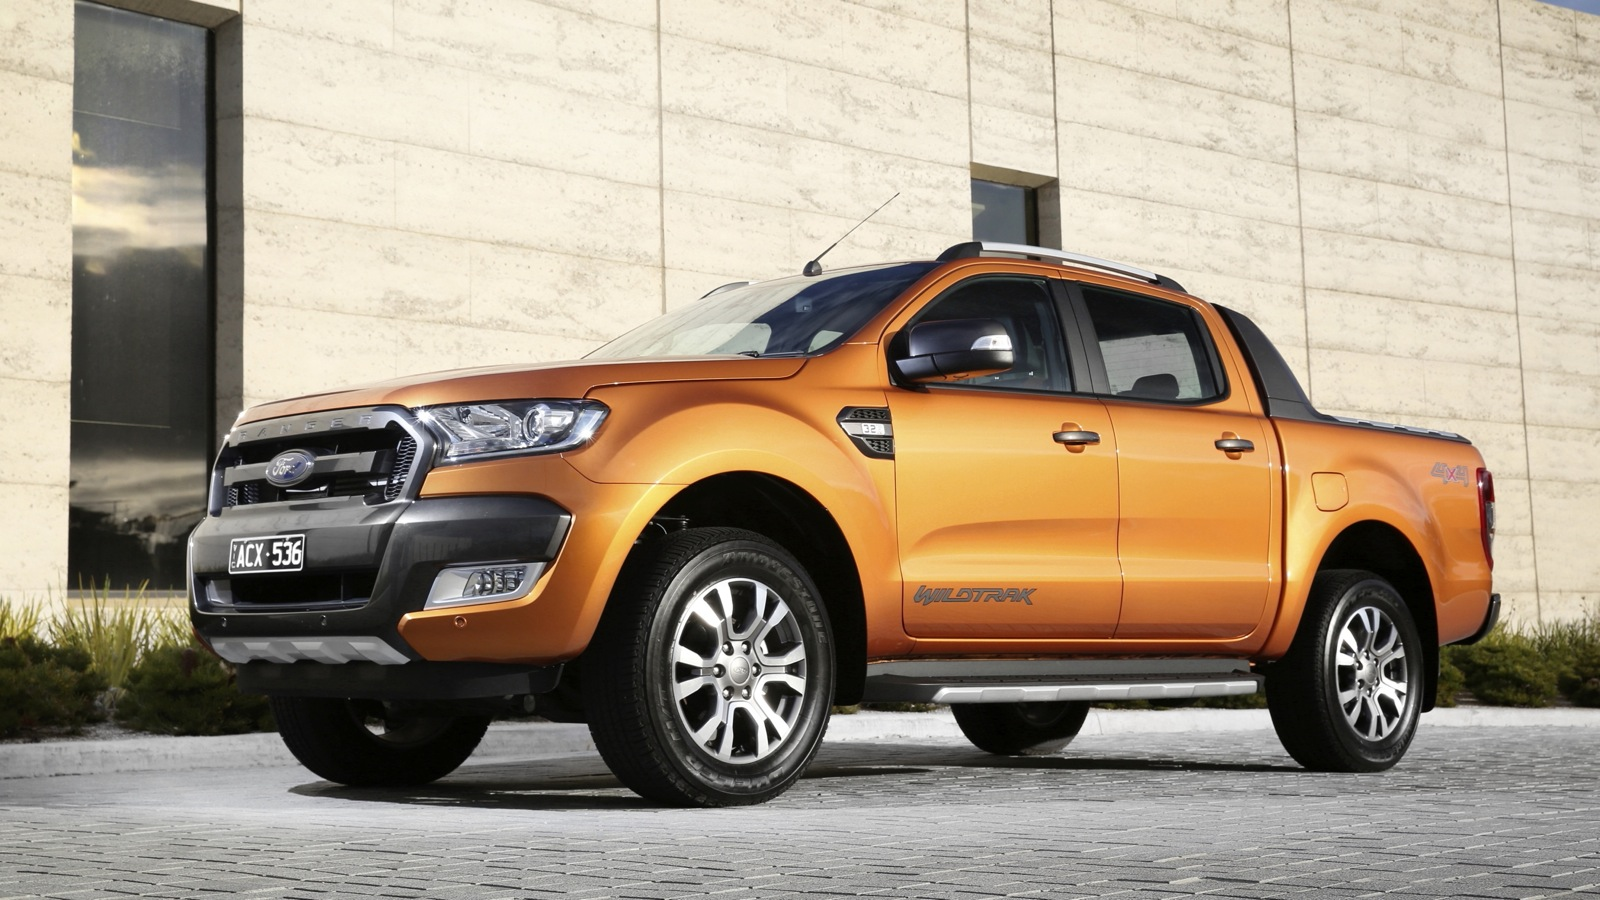 2016 ford ranger - photo #27